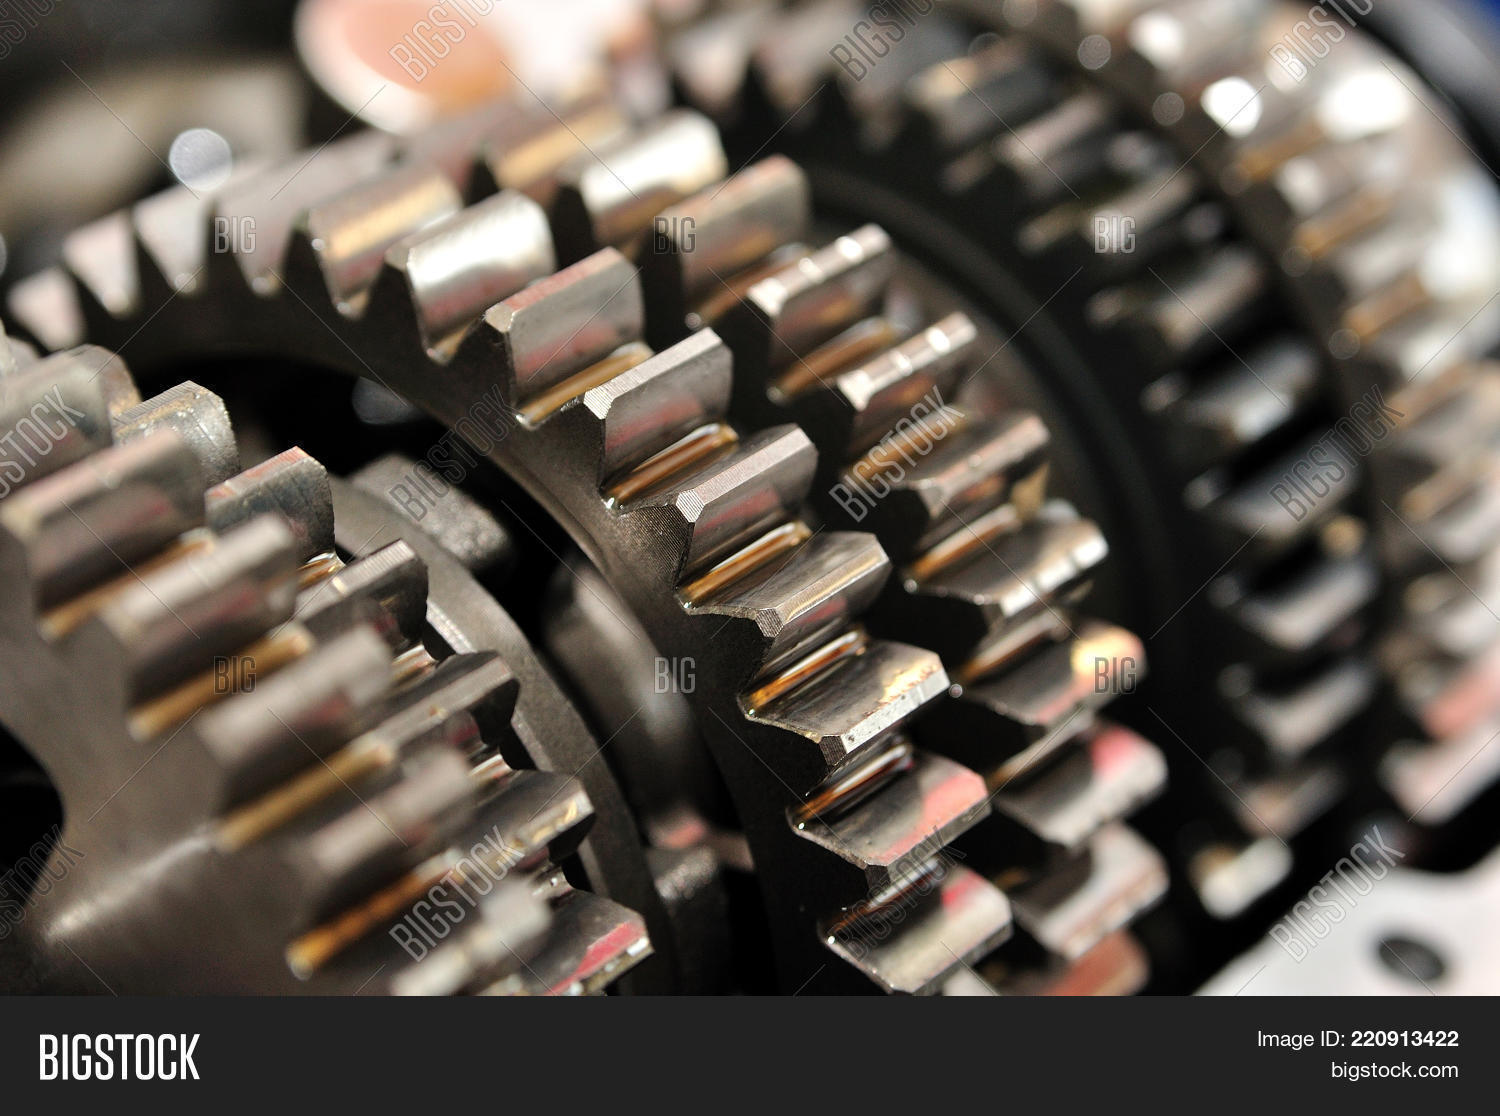 Gears Motorcycle Image Photo Free Trial Bigstock Gear Box Of From A Gearbox With Selective Focus